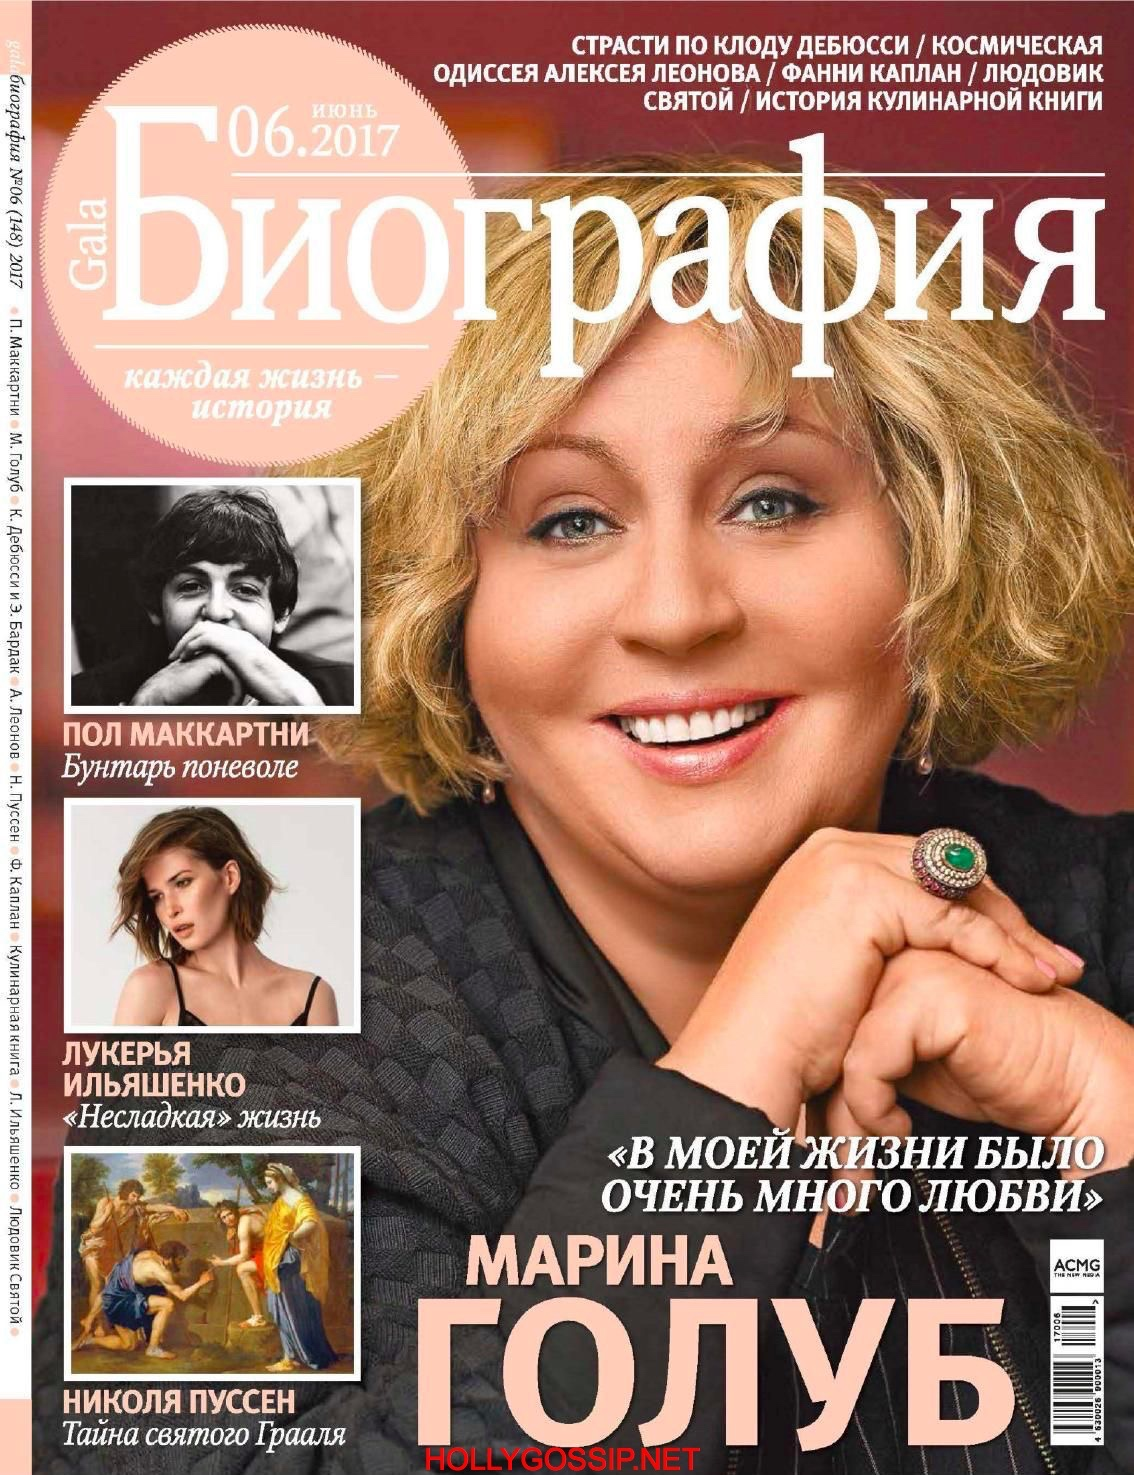 The death of Marina Golub: Performances in the Moscow Art Theater are canceled, the girls remain 10/10/2012 43